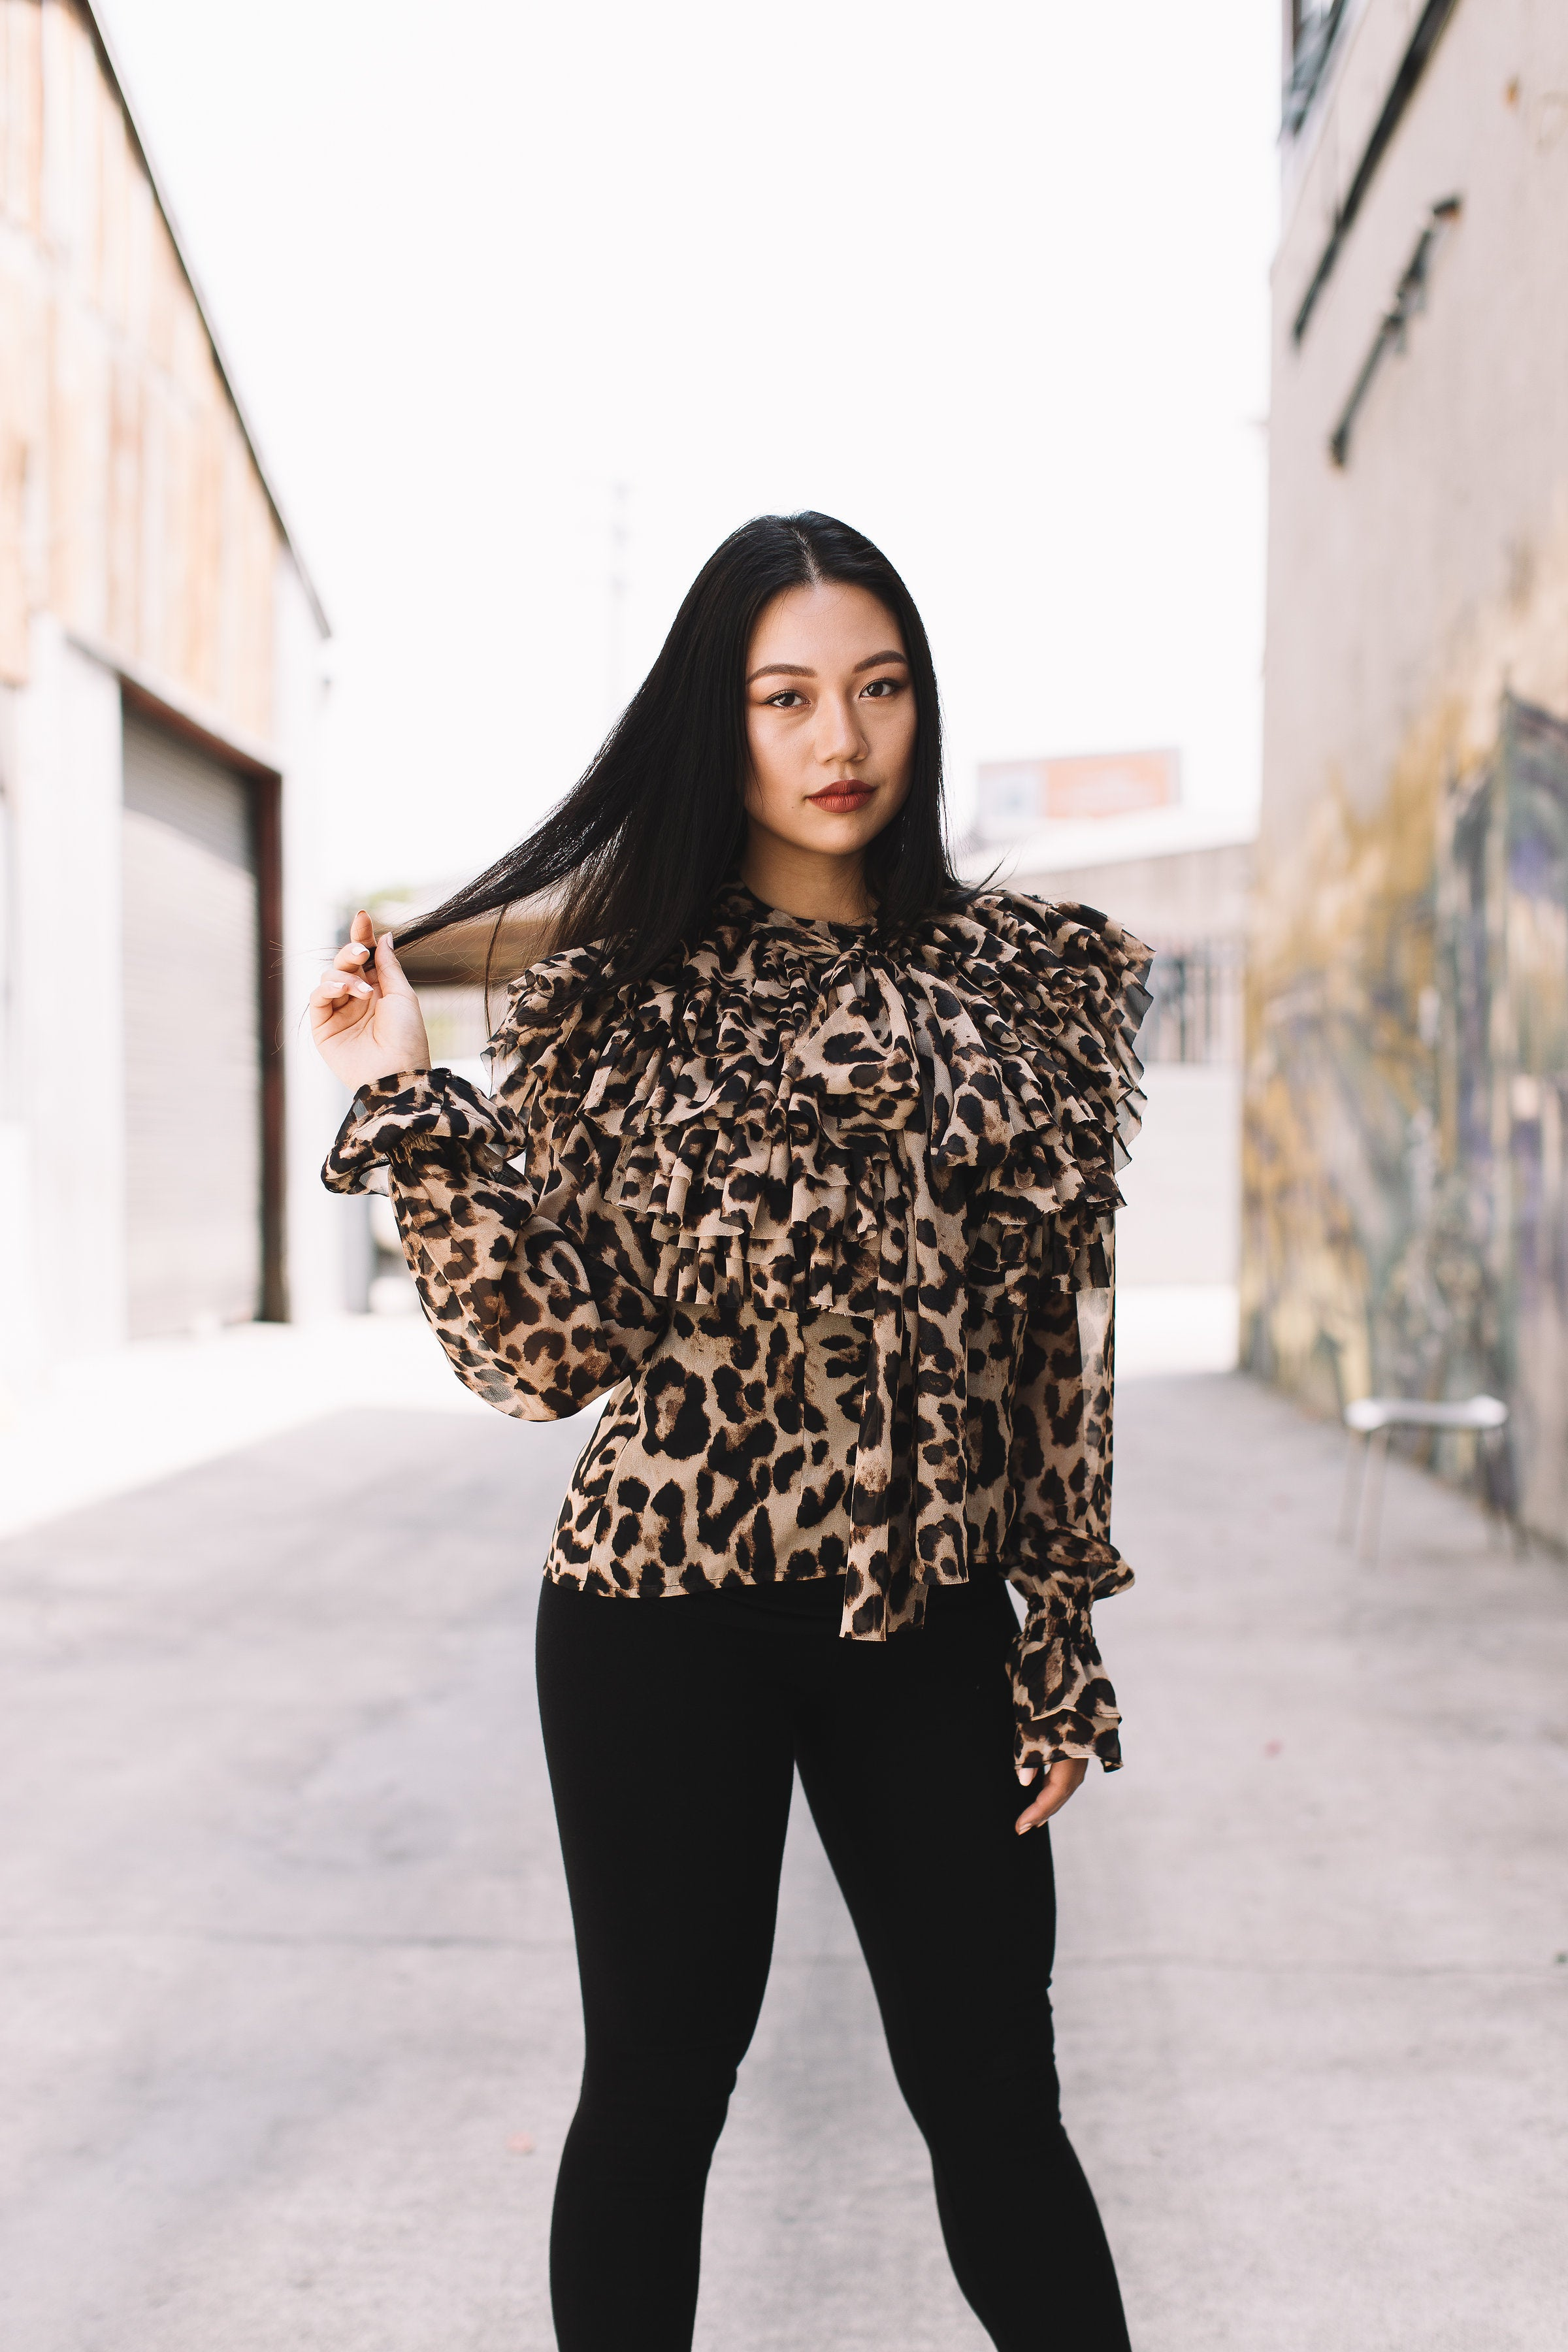 825b1038ace Leopard Print Layered Ruffle with Tie Neck Blouse -  TI044-F02 ...